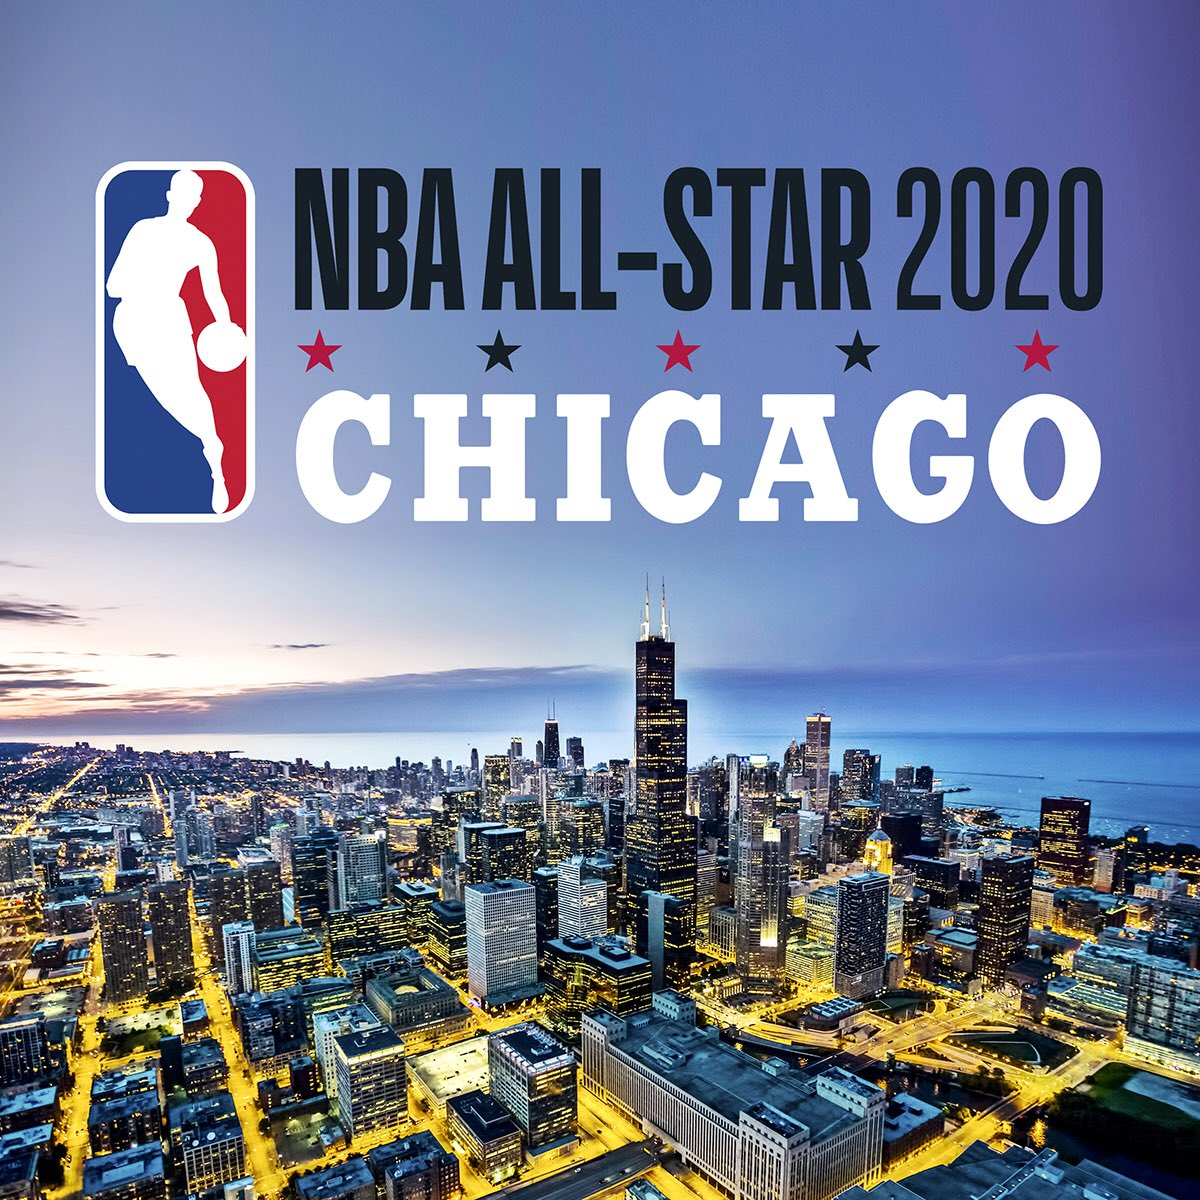 Chicago. 2020. @NBA All-Star Game.  It's happening! https://t.co/WcHwWIXzOl